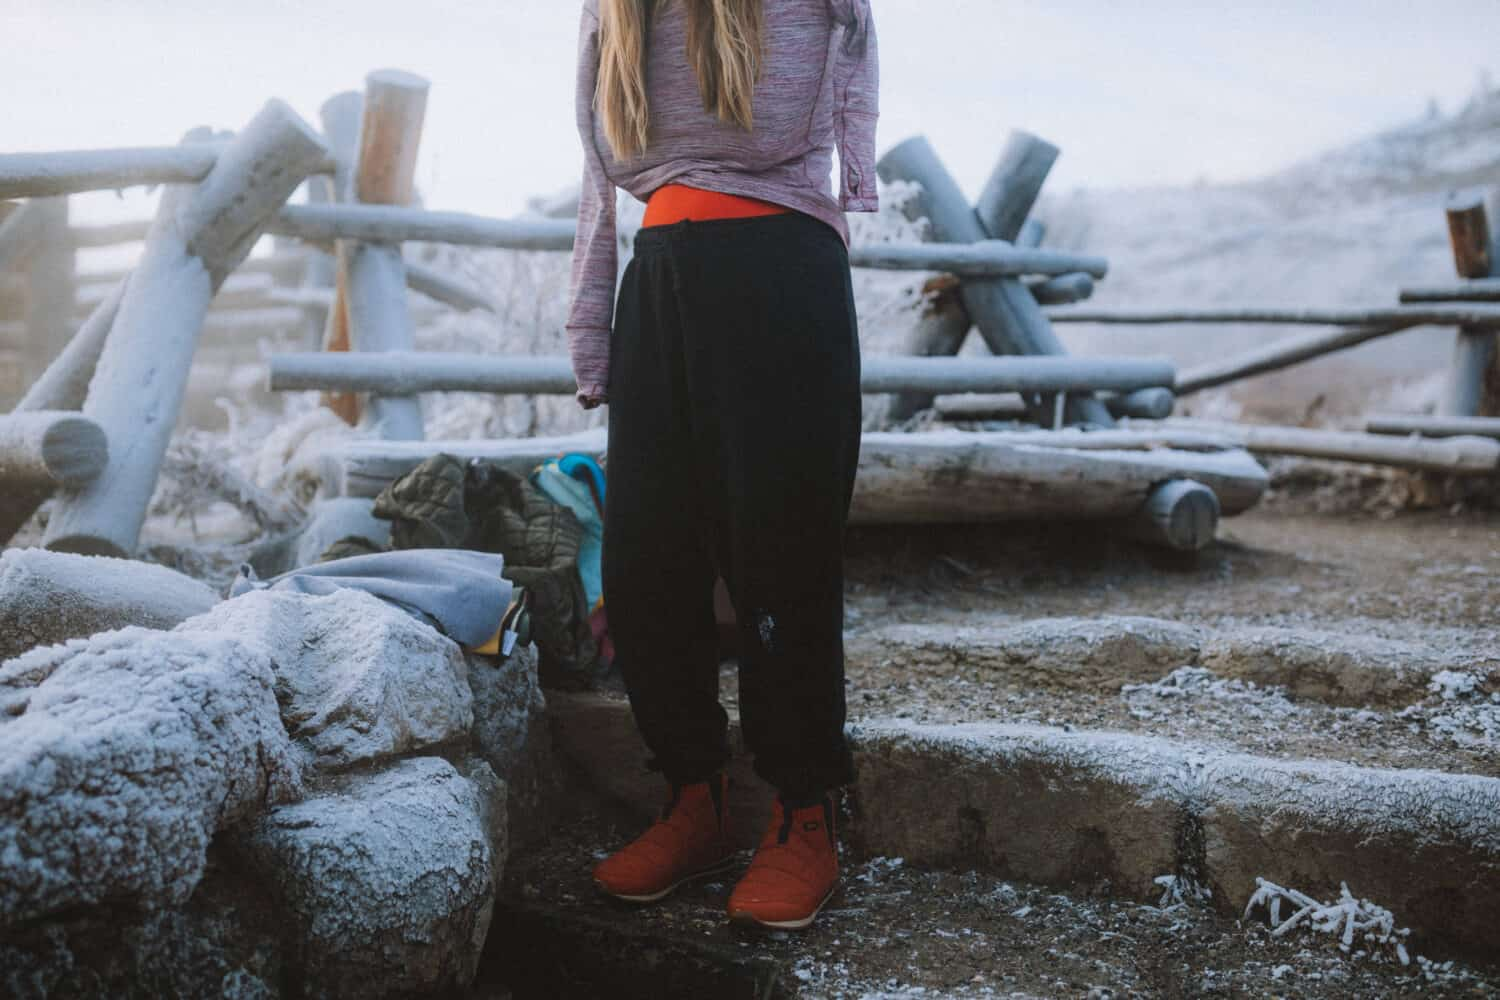 Emily wearing Sweats and slippers at the boiling river wy - themandagies.com